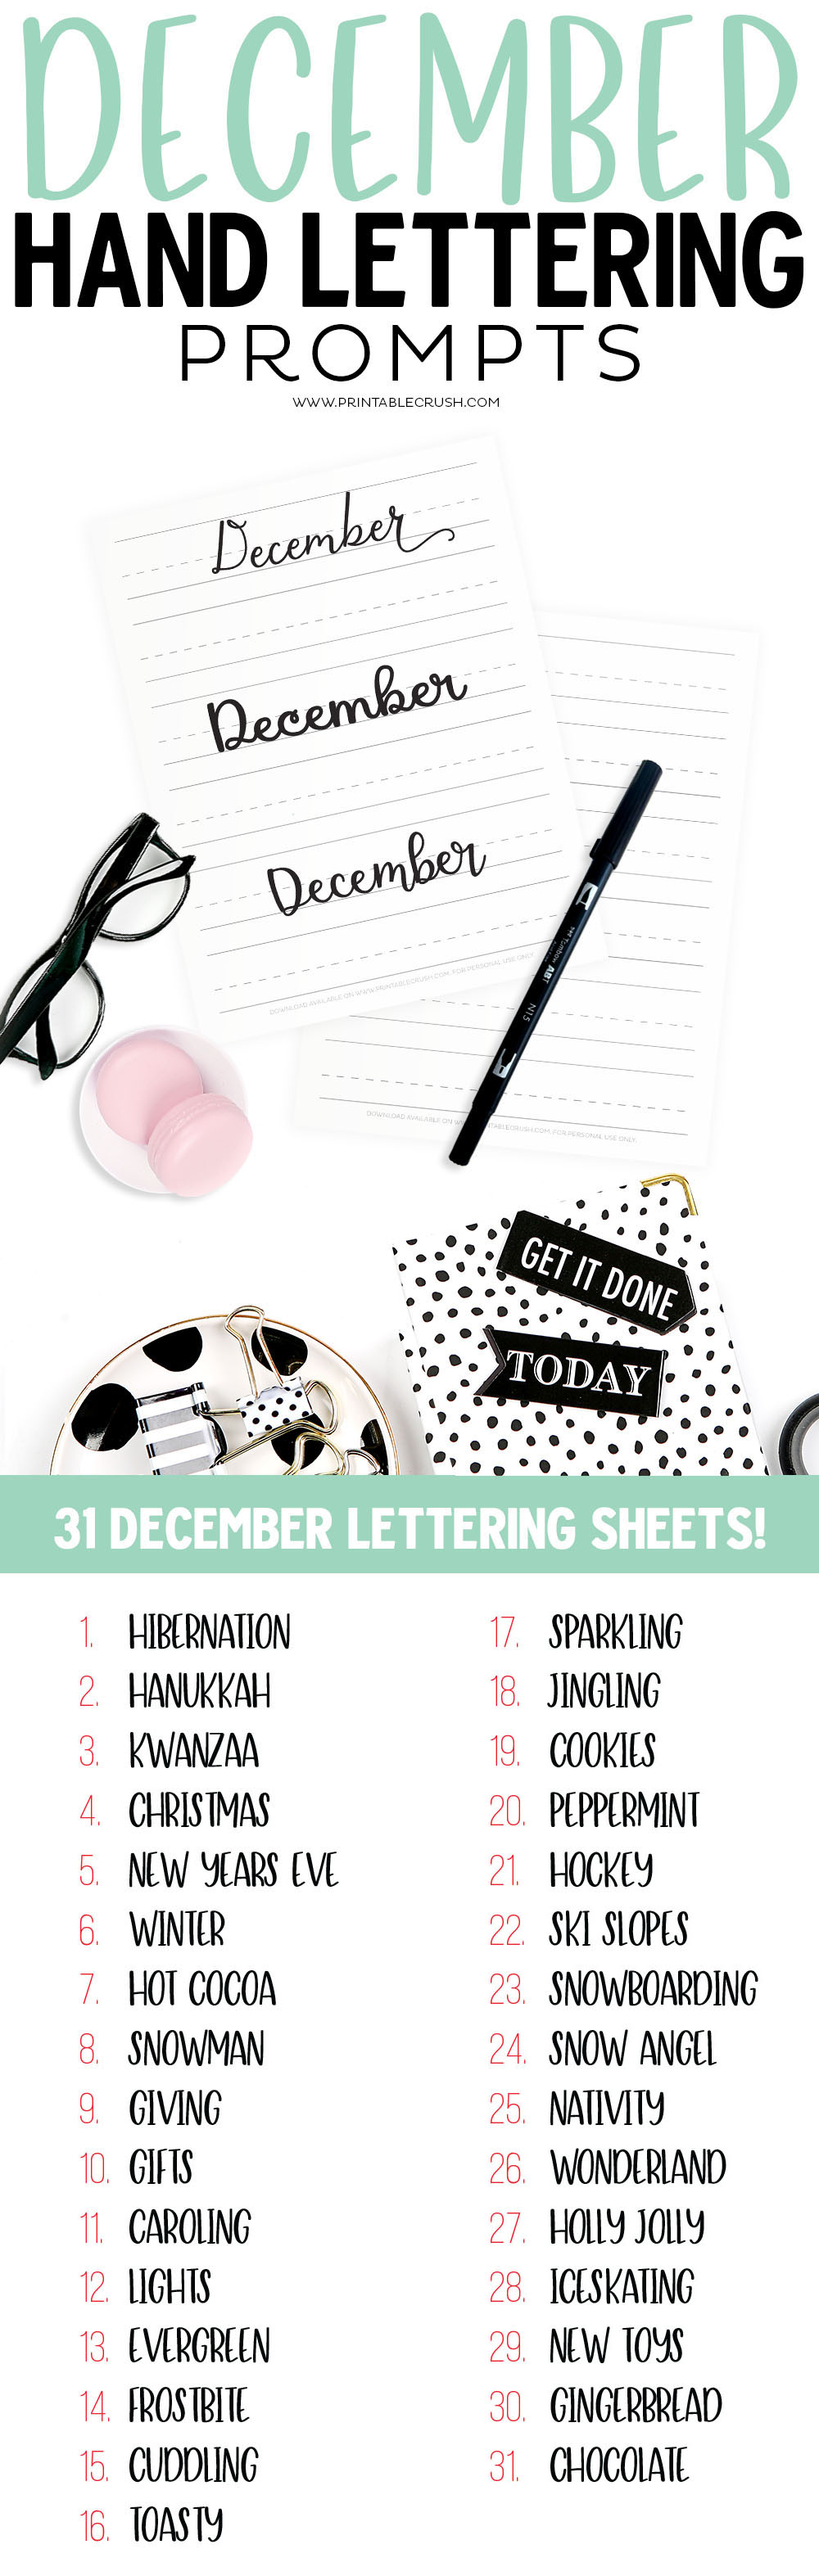 Get 34 December Hand Lettering Worksheets and Prompts FREE and practice daily to improve your hand lettering!